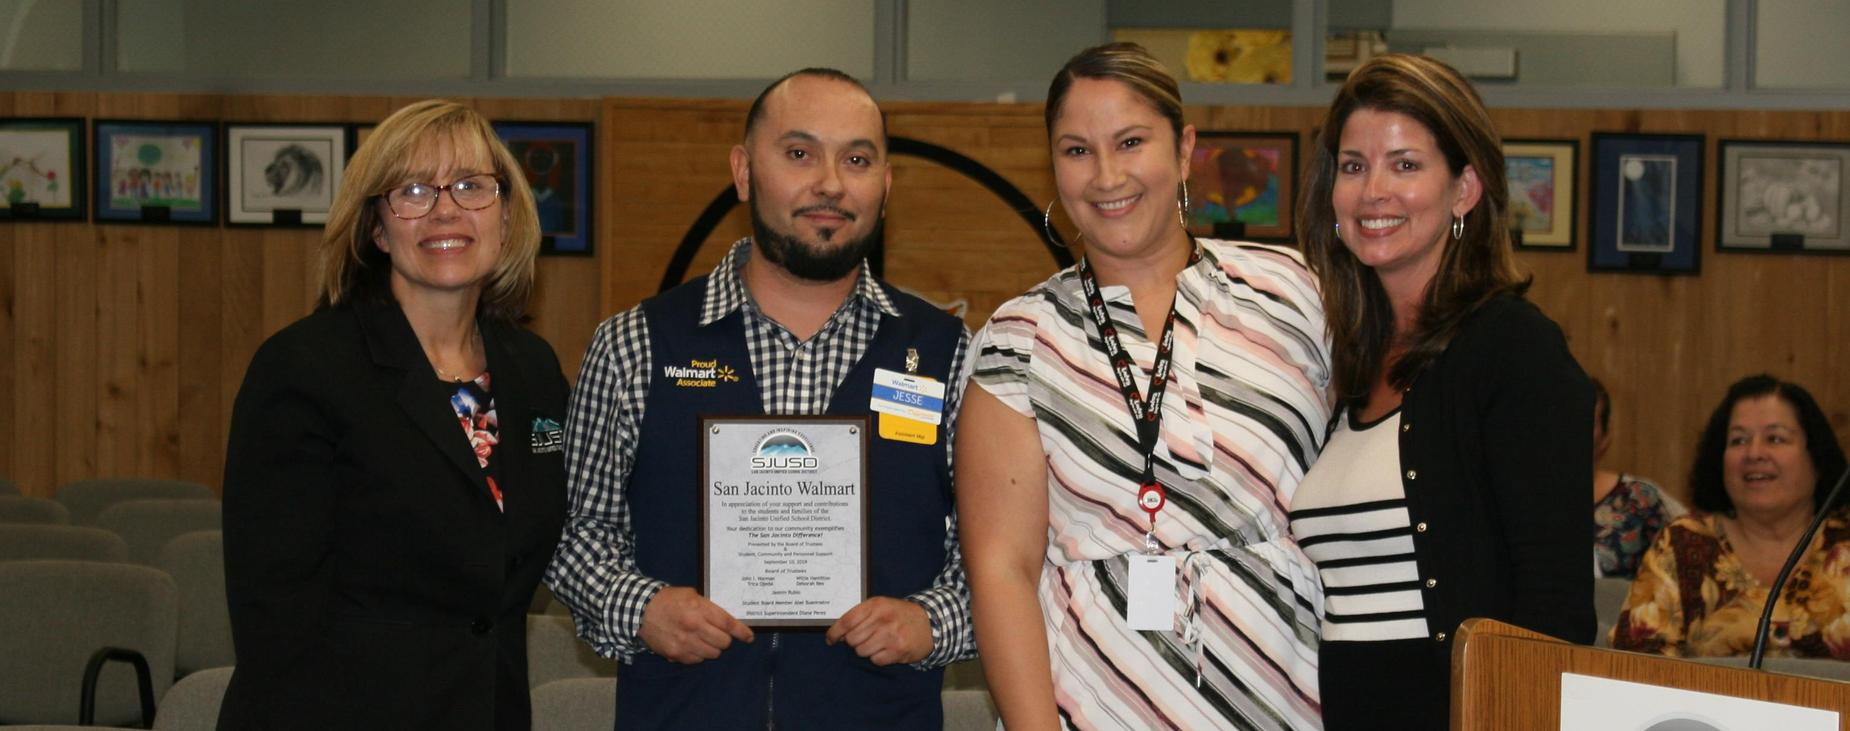 L-R, Dep. Superintendent Smith, Specialist Adame and Director Dr. Kirschinger recognize SJ Walmart Assistant Manager Jesse for contributions to students and families at SJUSD.